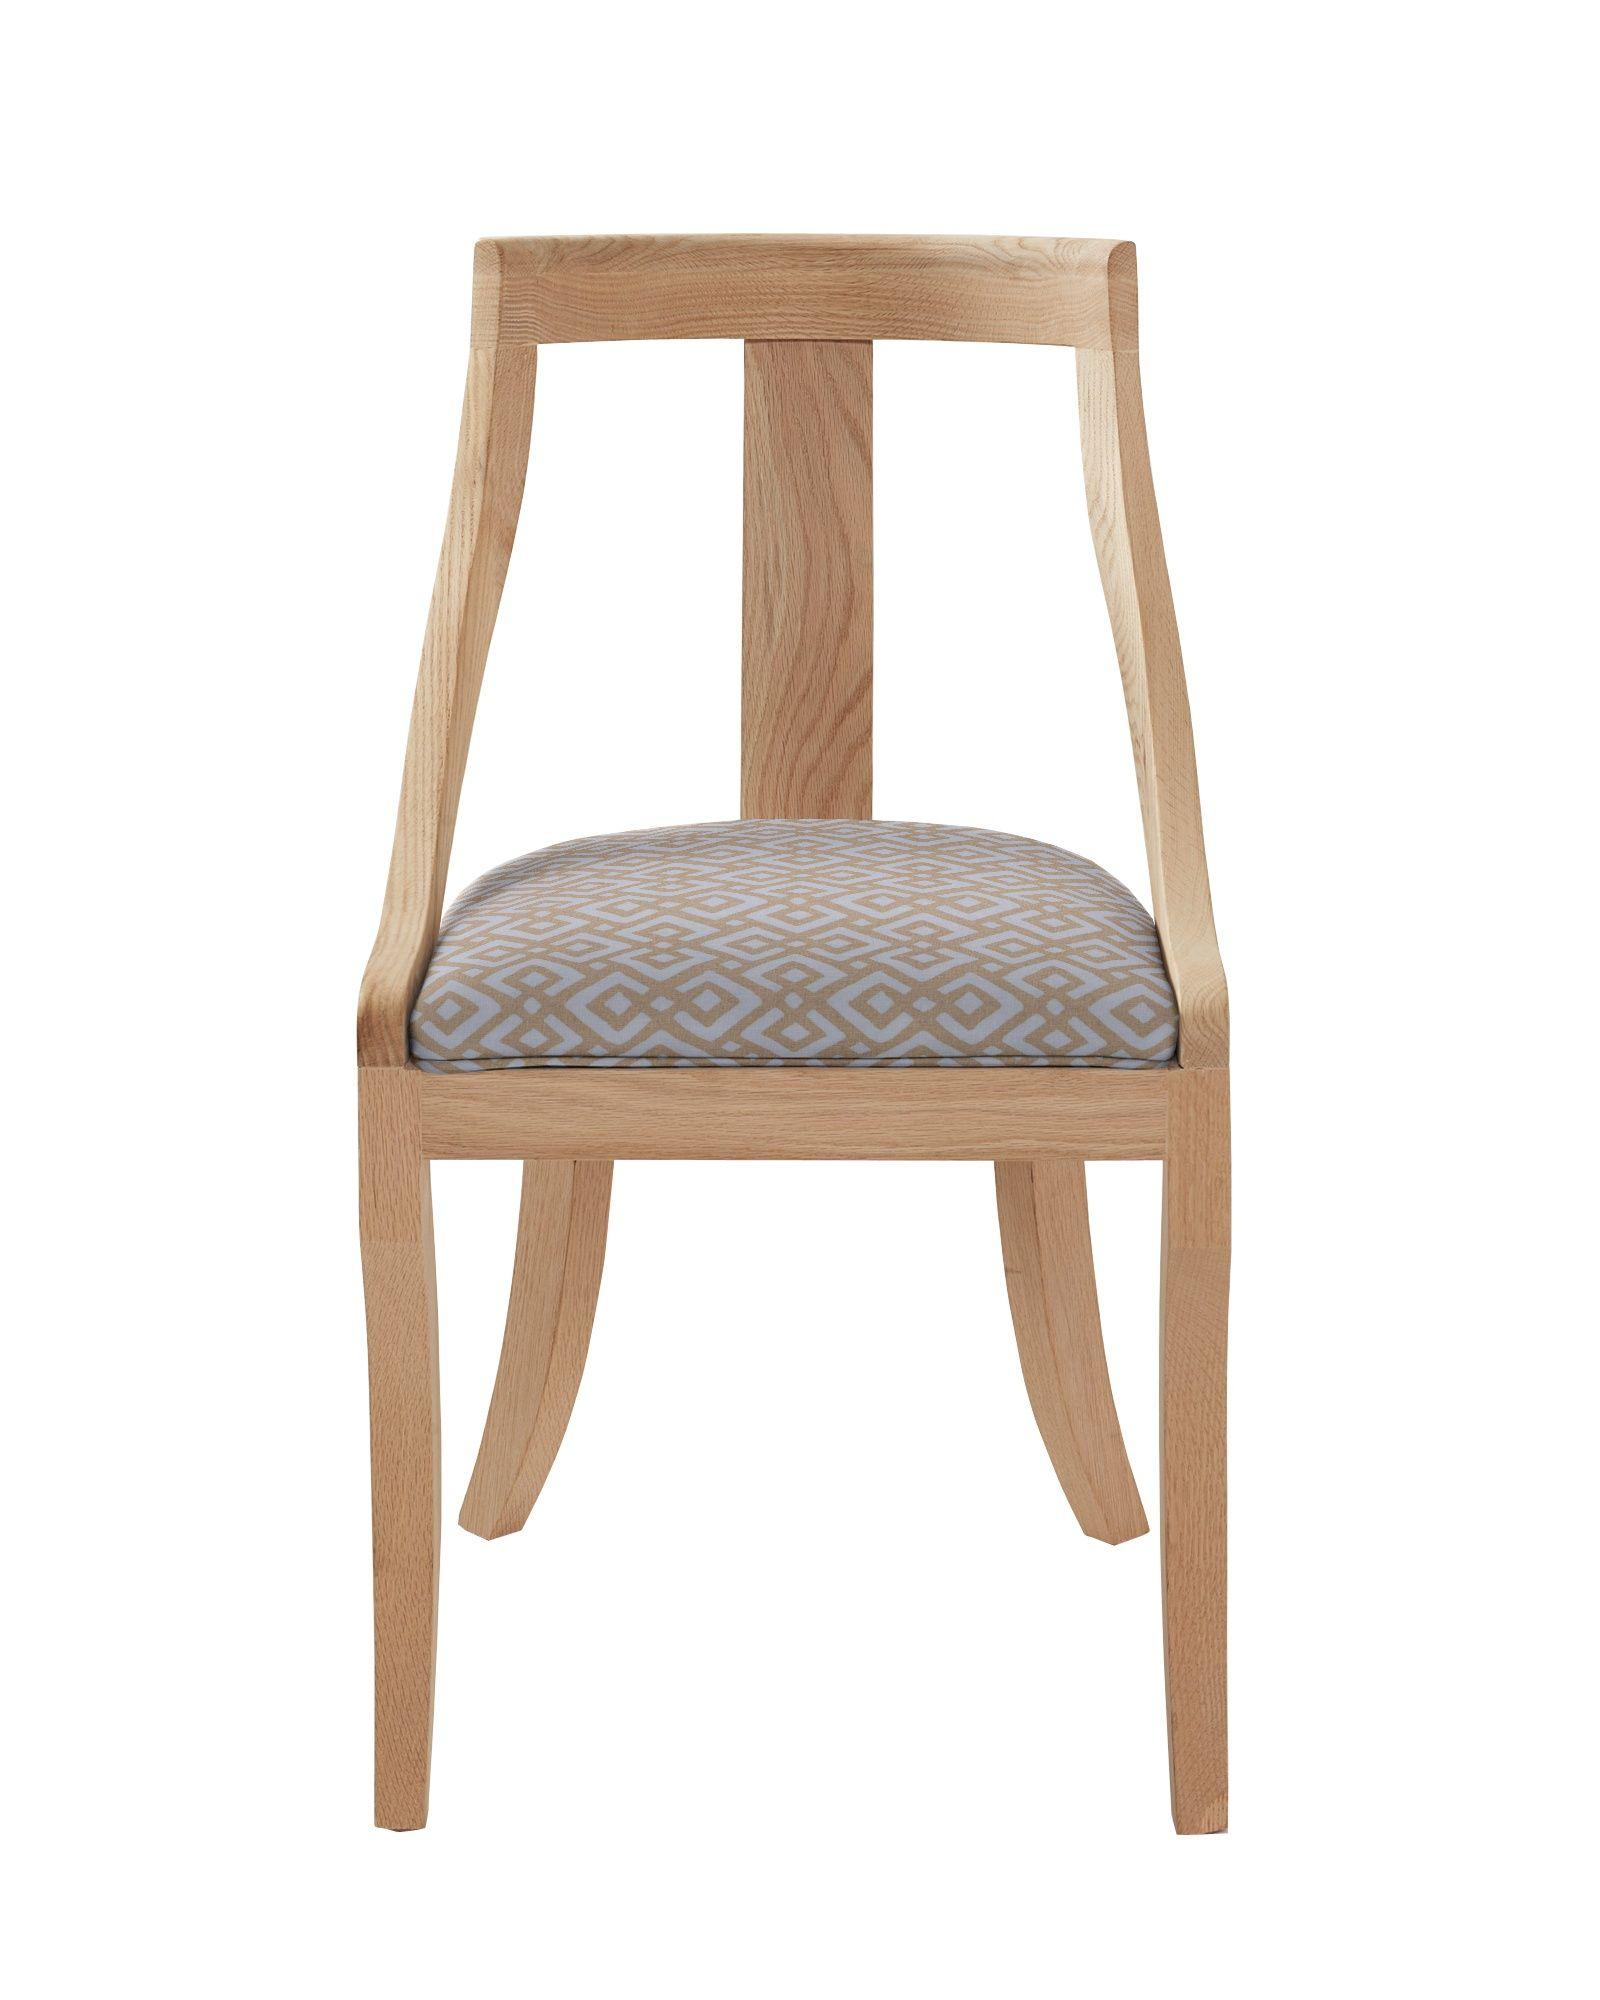 We Love The Sophistication And Comfort An Upholstered Chair Brings To The Dining Table This Unique Shape Is Ins Classy Chair Dining Chairs Metal Dining Chairs